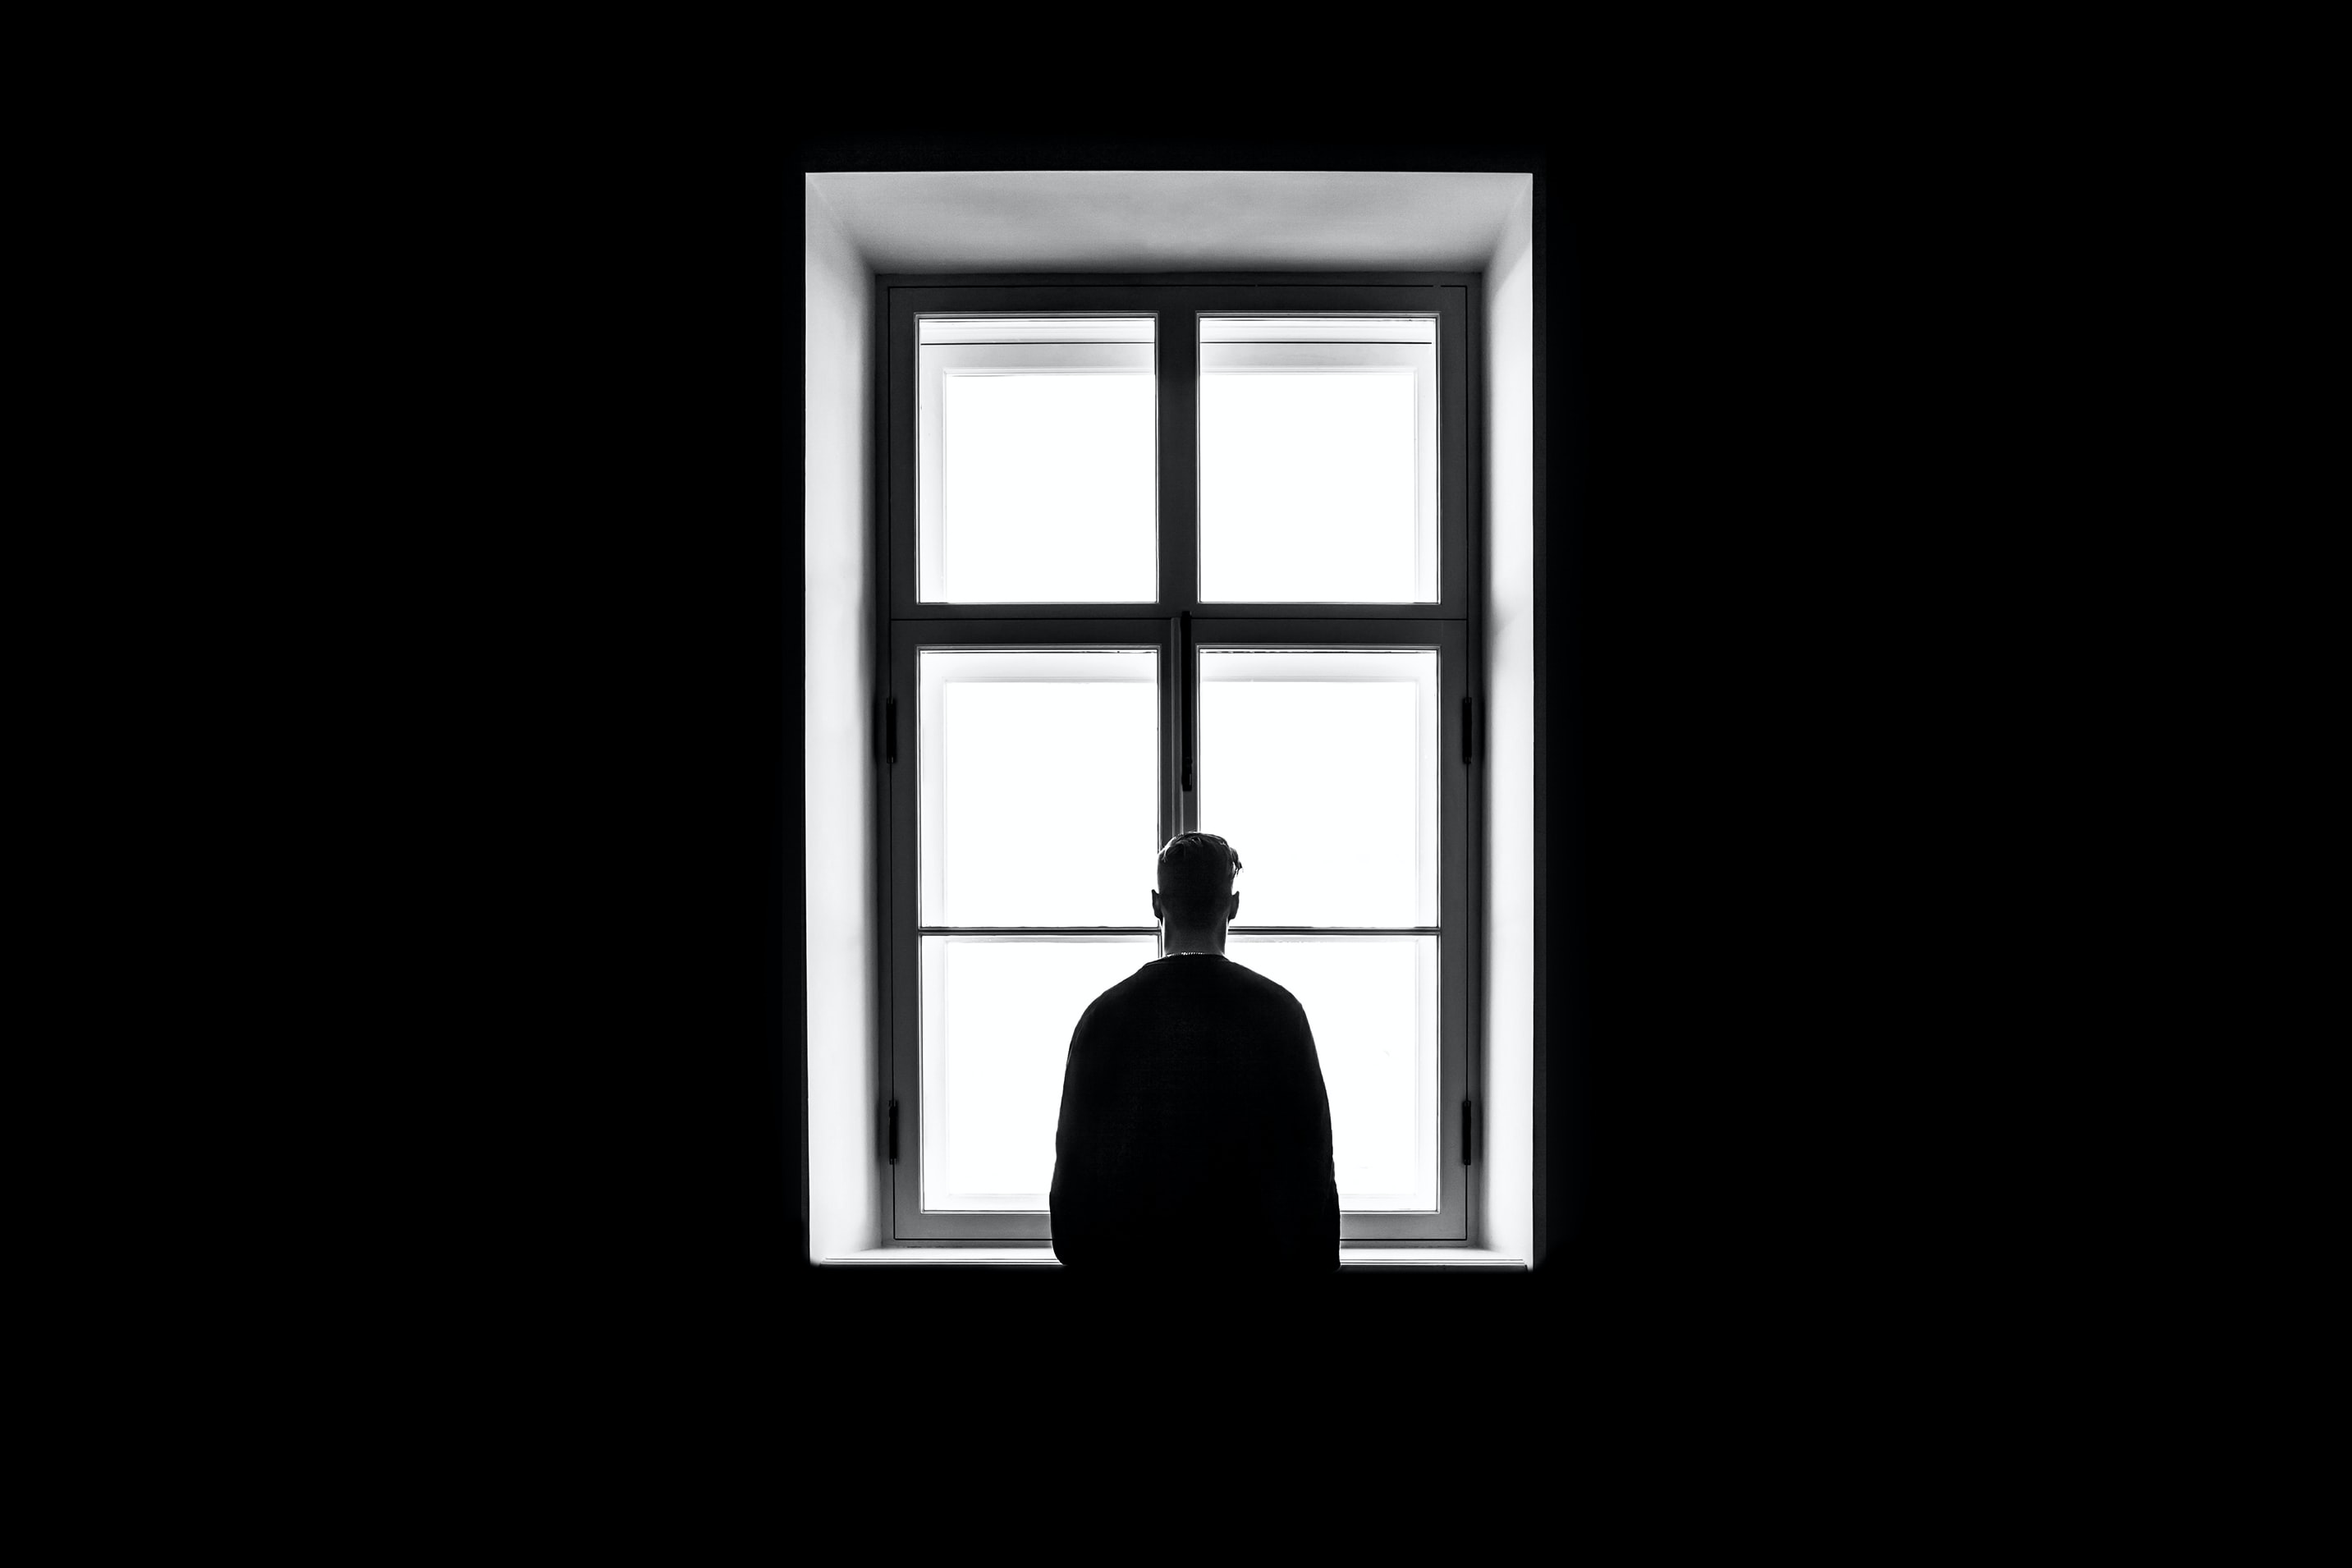 Caption: man standing in front of the window, Credit: Photo by Sasha Freemind on Unsplash